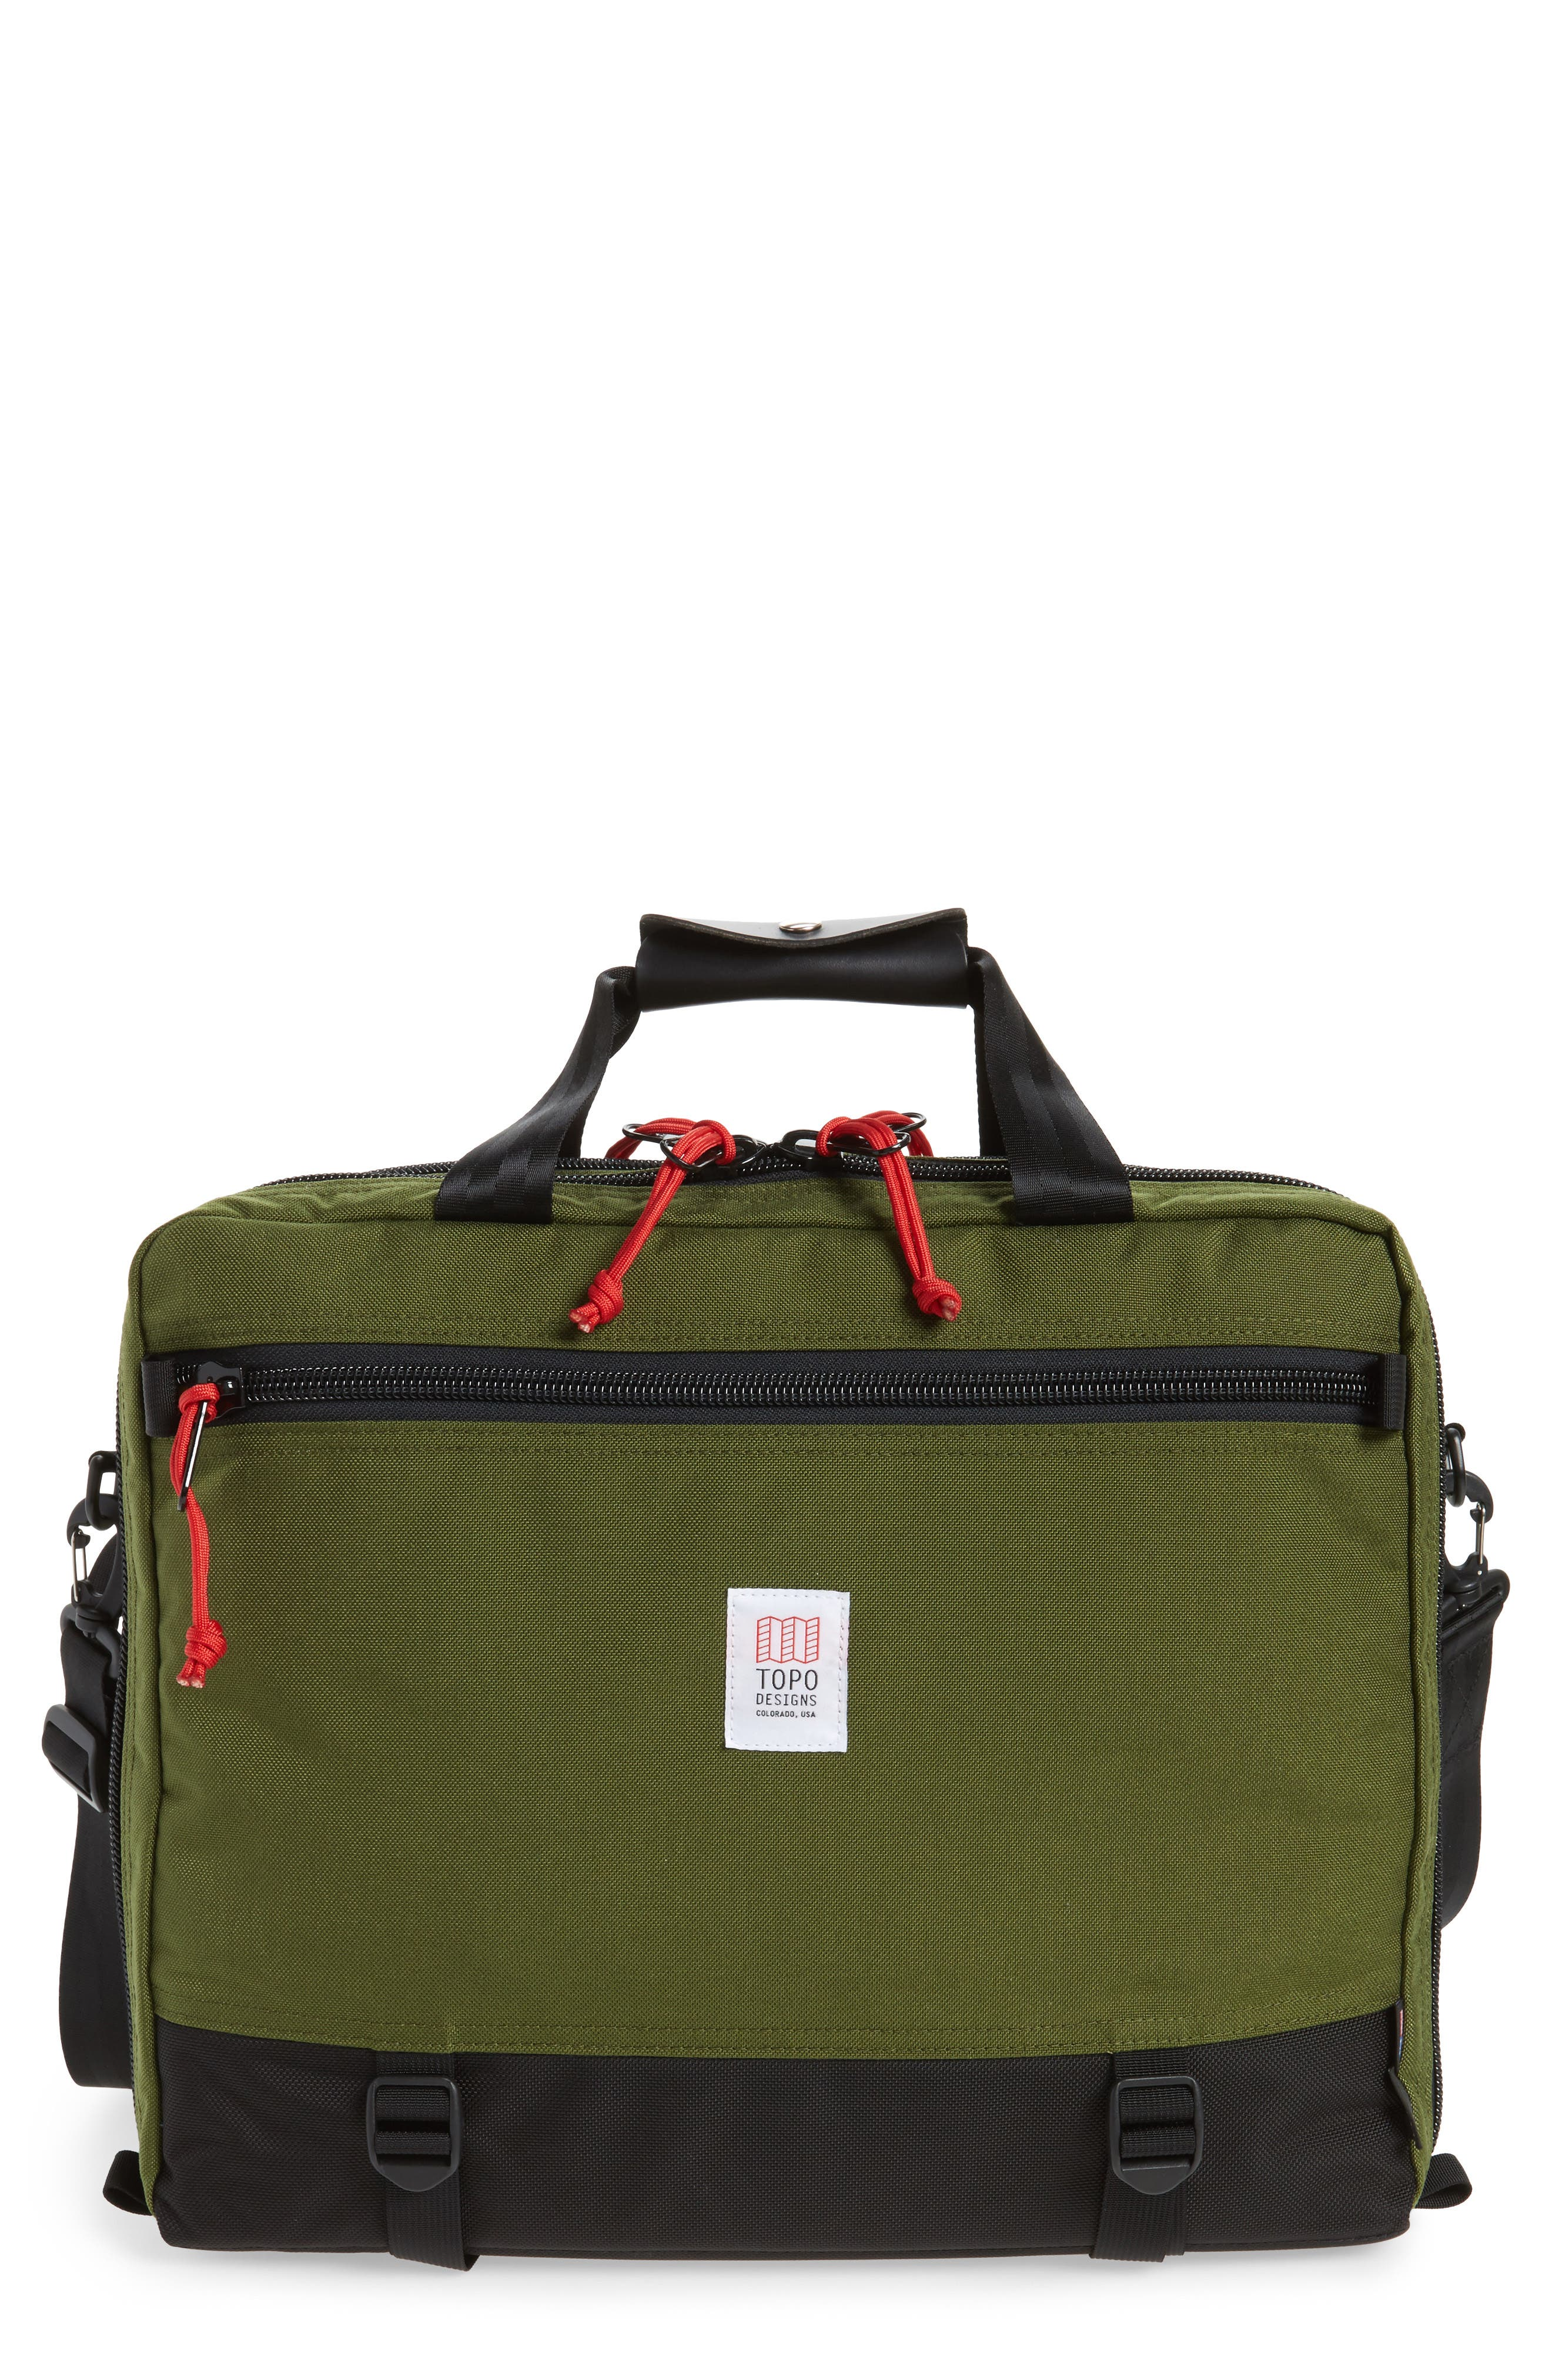 3-Day Briefcase,                             Main thumbnail 1, color,                             Olive/ Ballistic Black